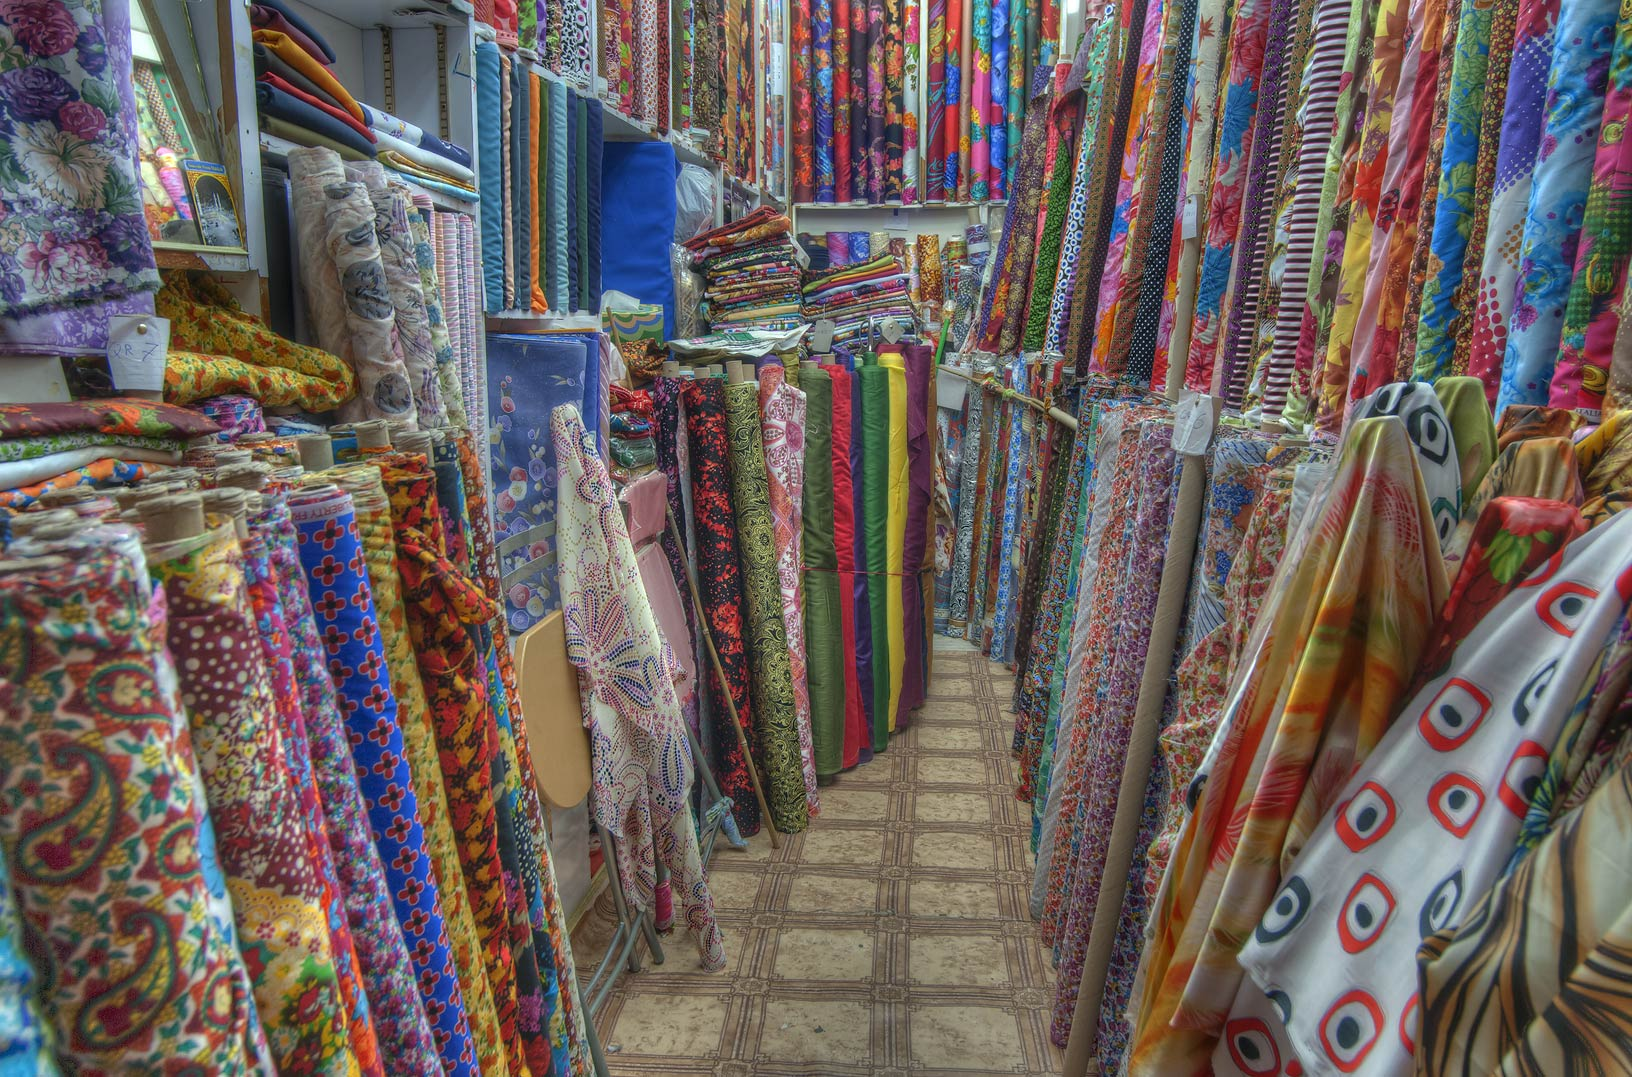 Satin fabric shop in Souq Waqif (Old Market). Doha, Qatar